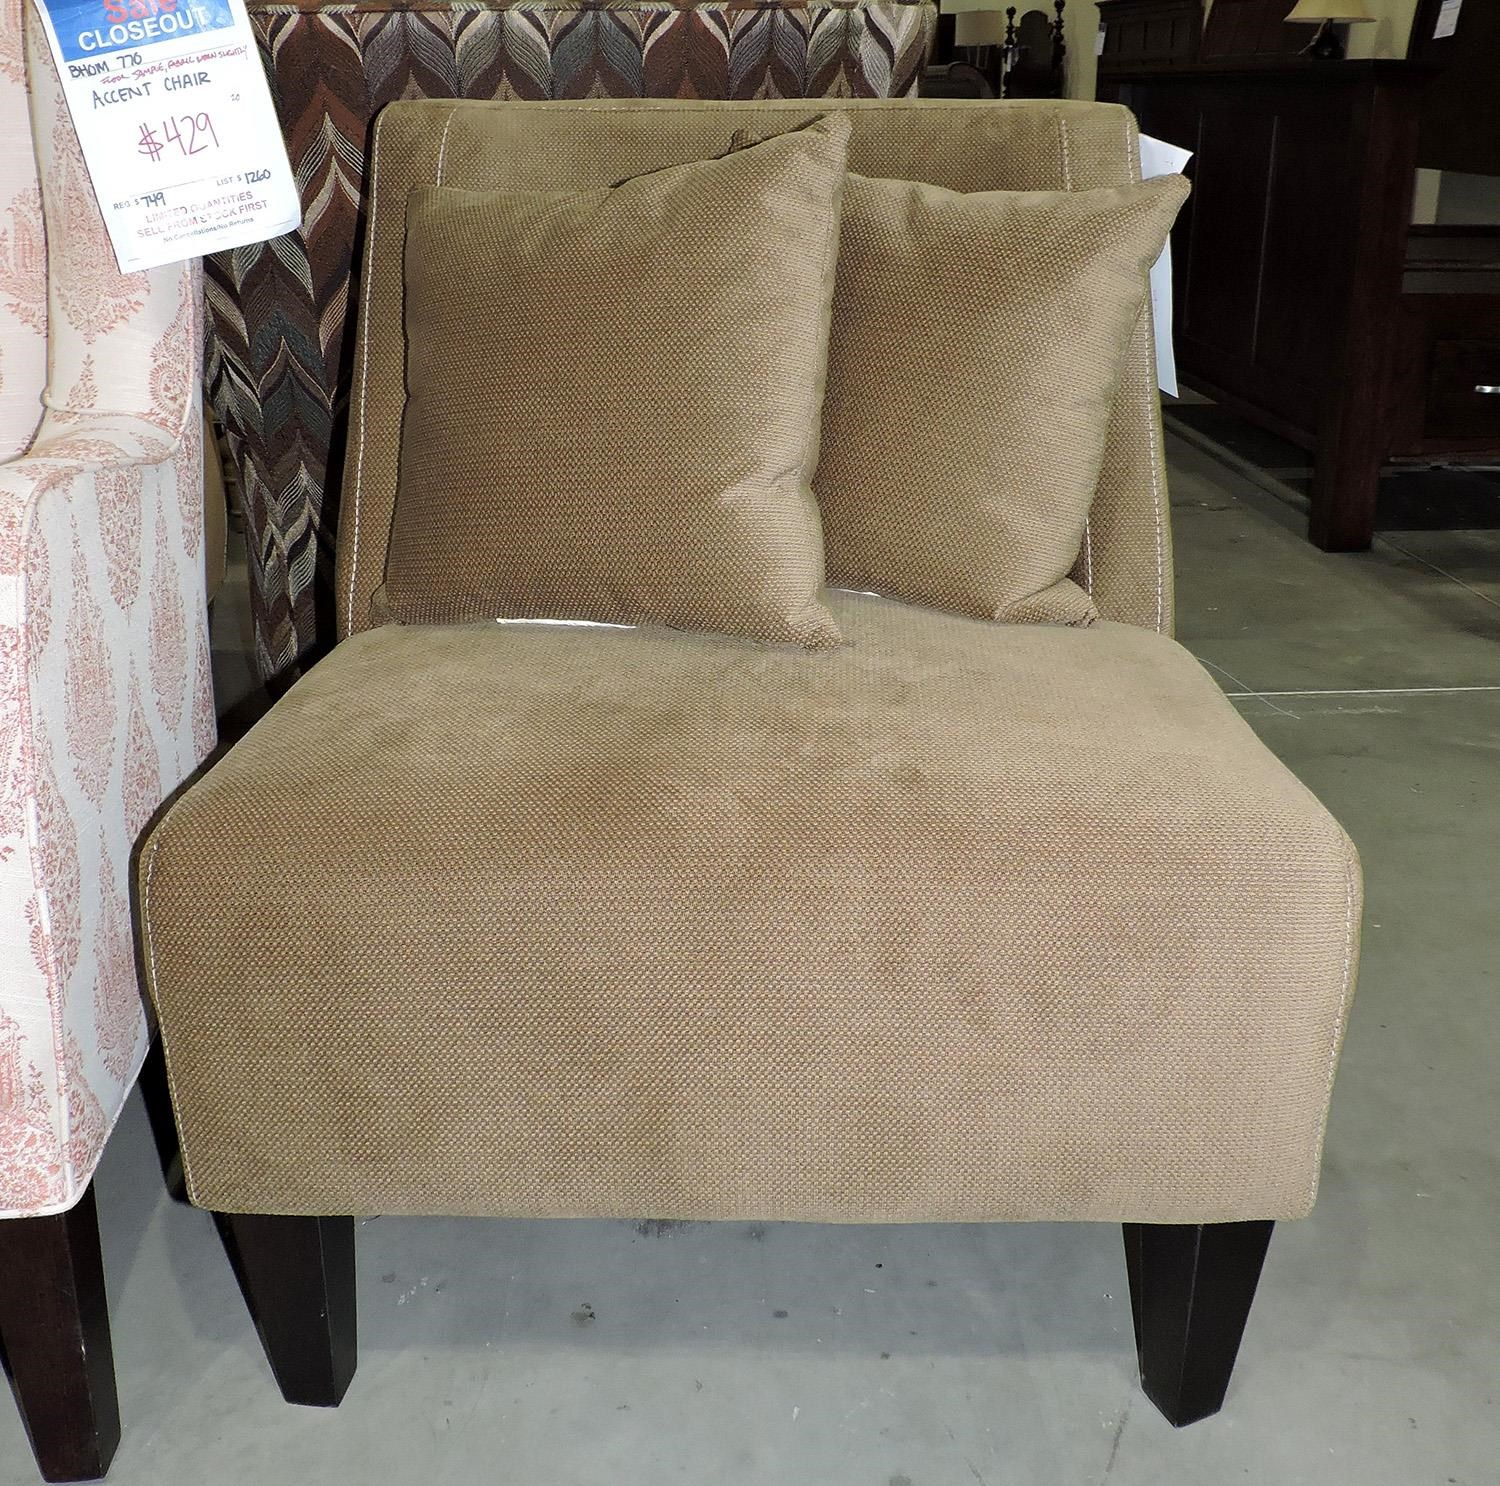 Palliser Clearance Othello Chair - Item Number: 238747166